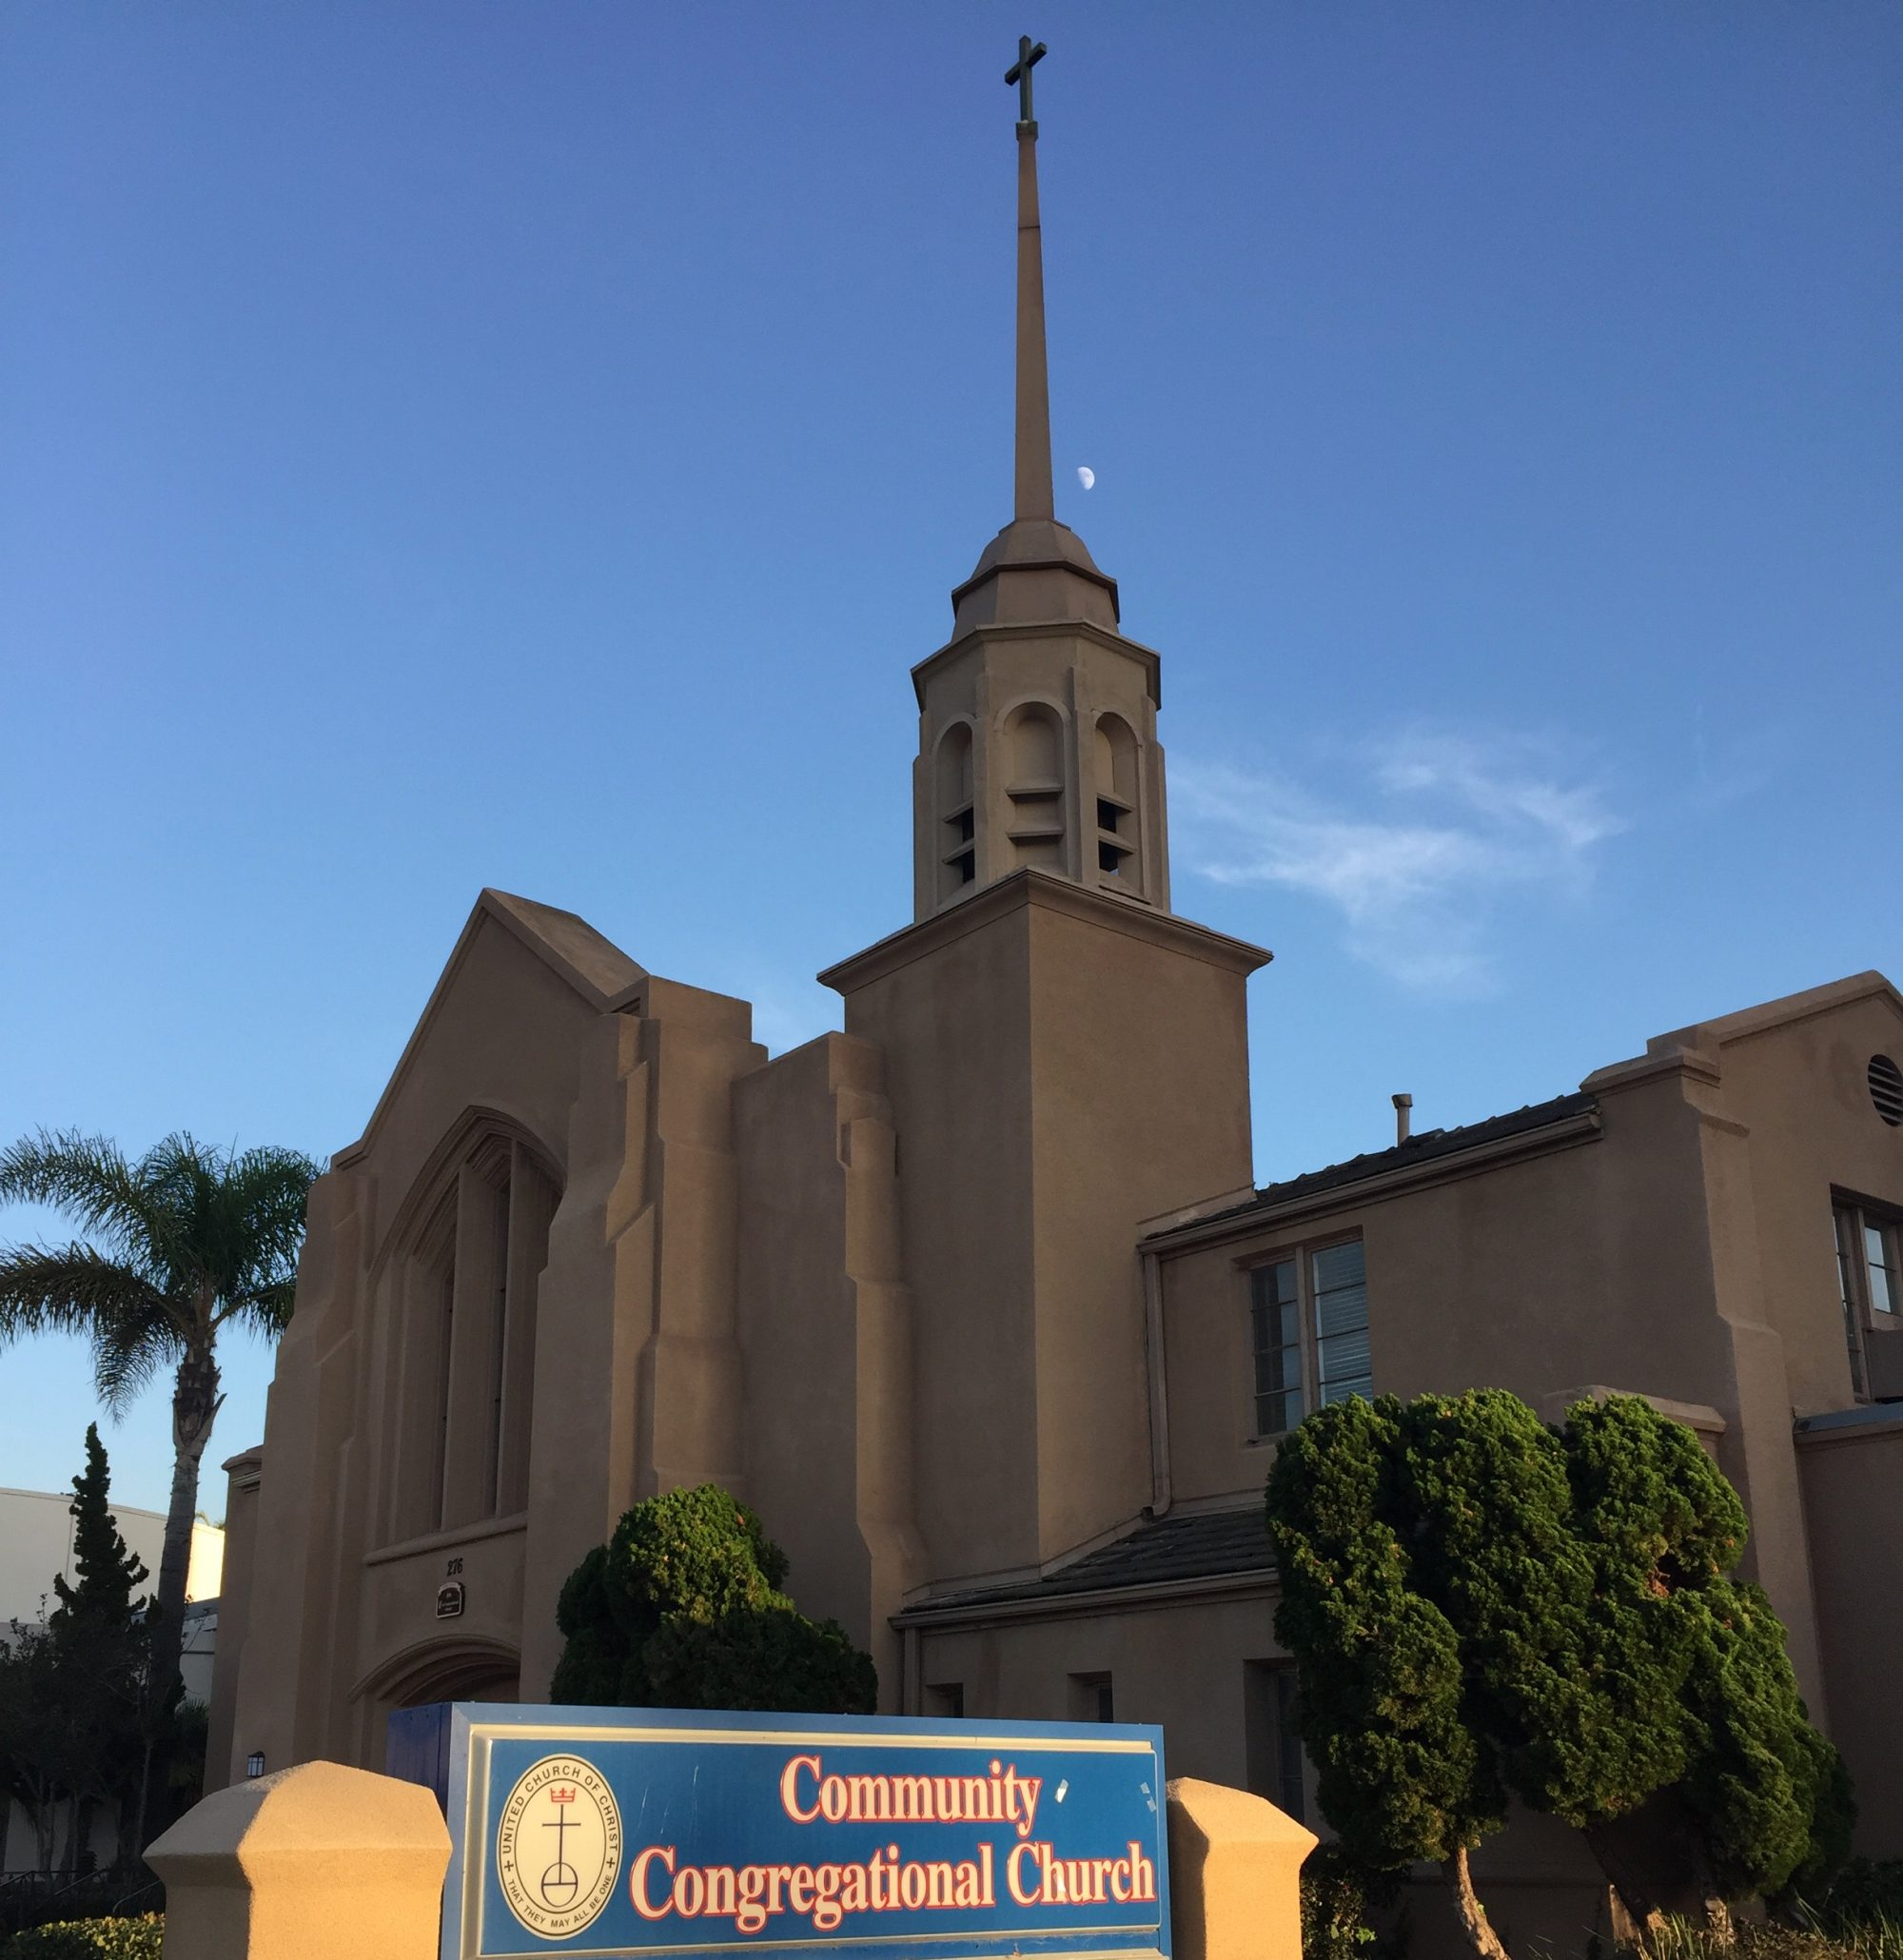 Community Congregational Church of Chula Vista UCC